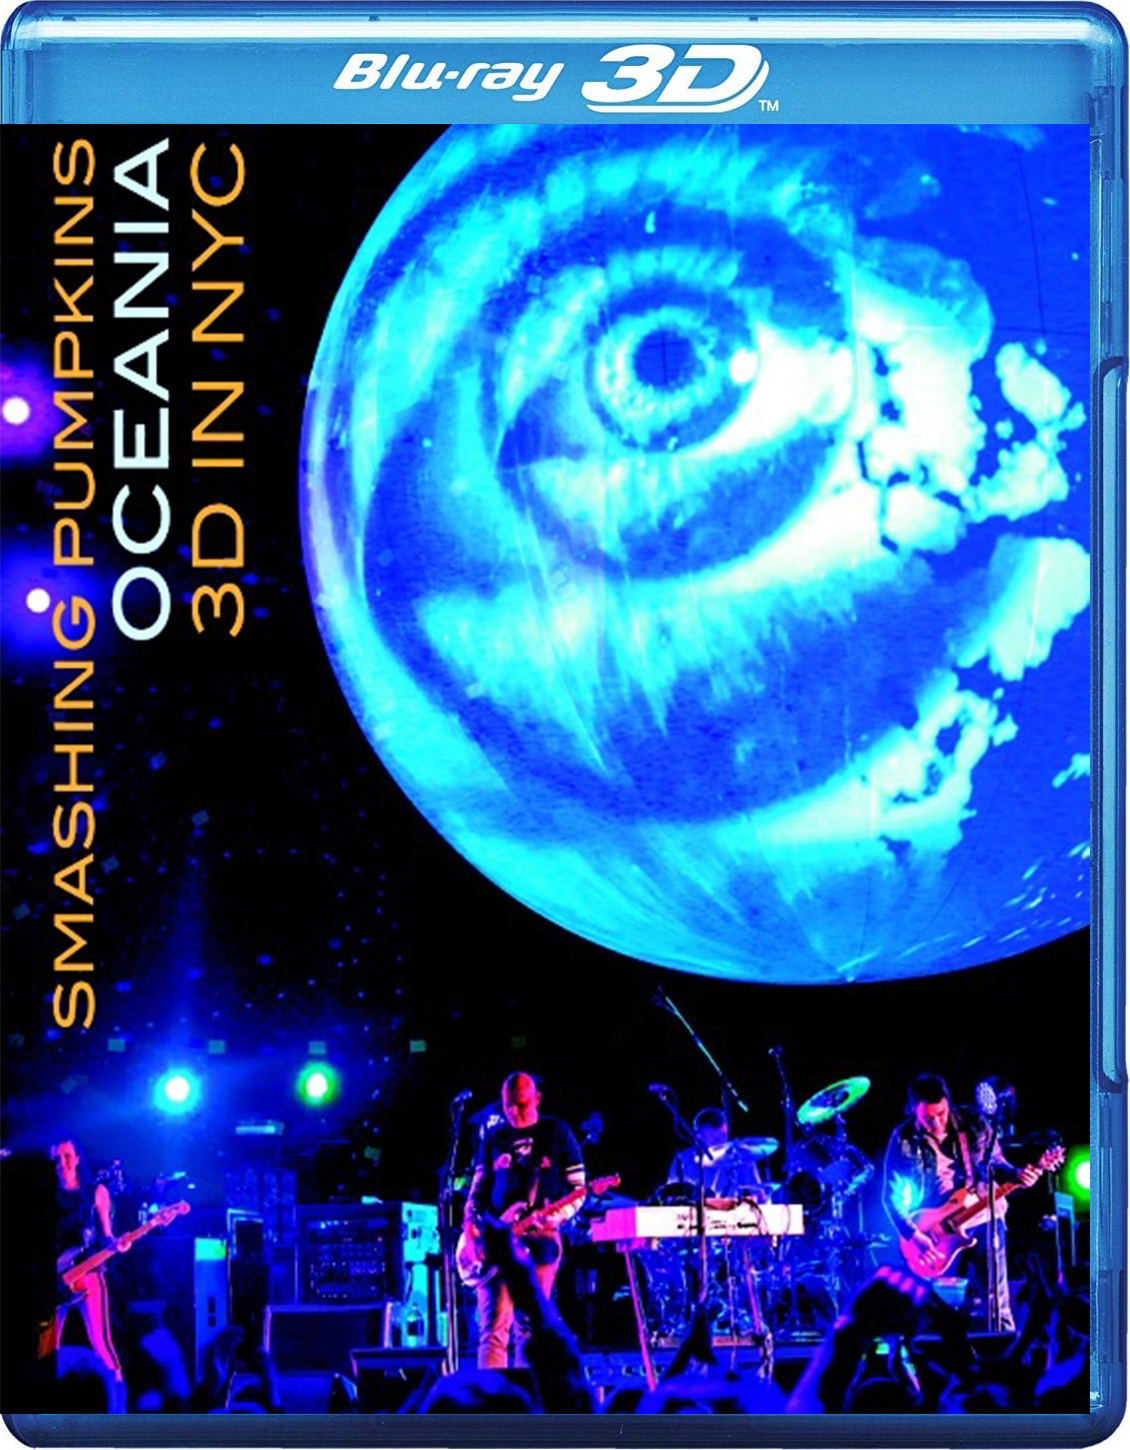 The Smashing Pumpkins: Oceania 3D Live in NYC [2012] [BD50] [2D + 3D]